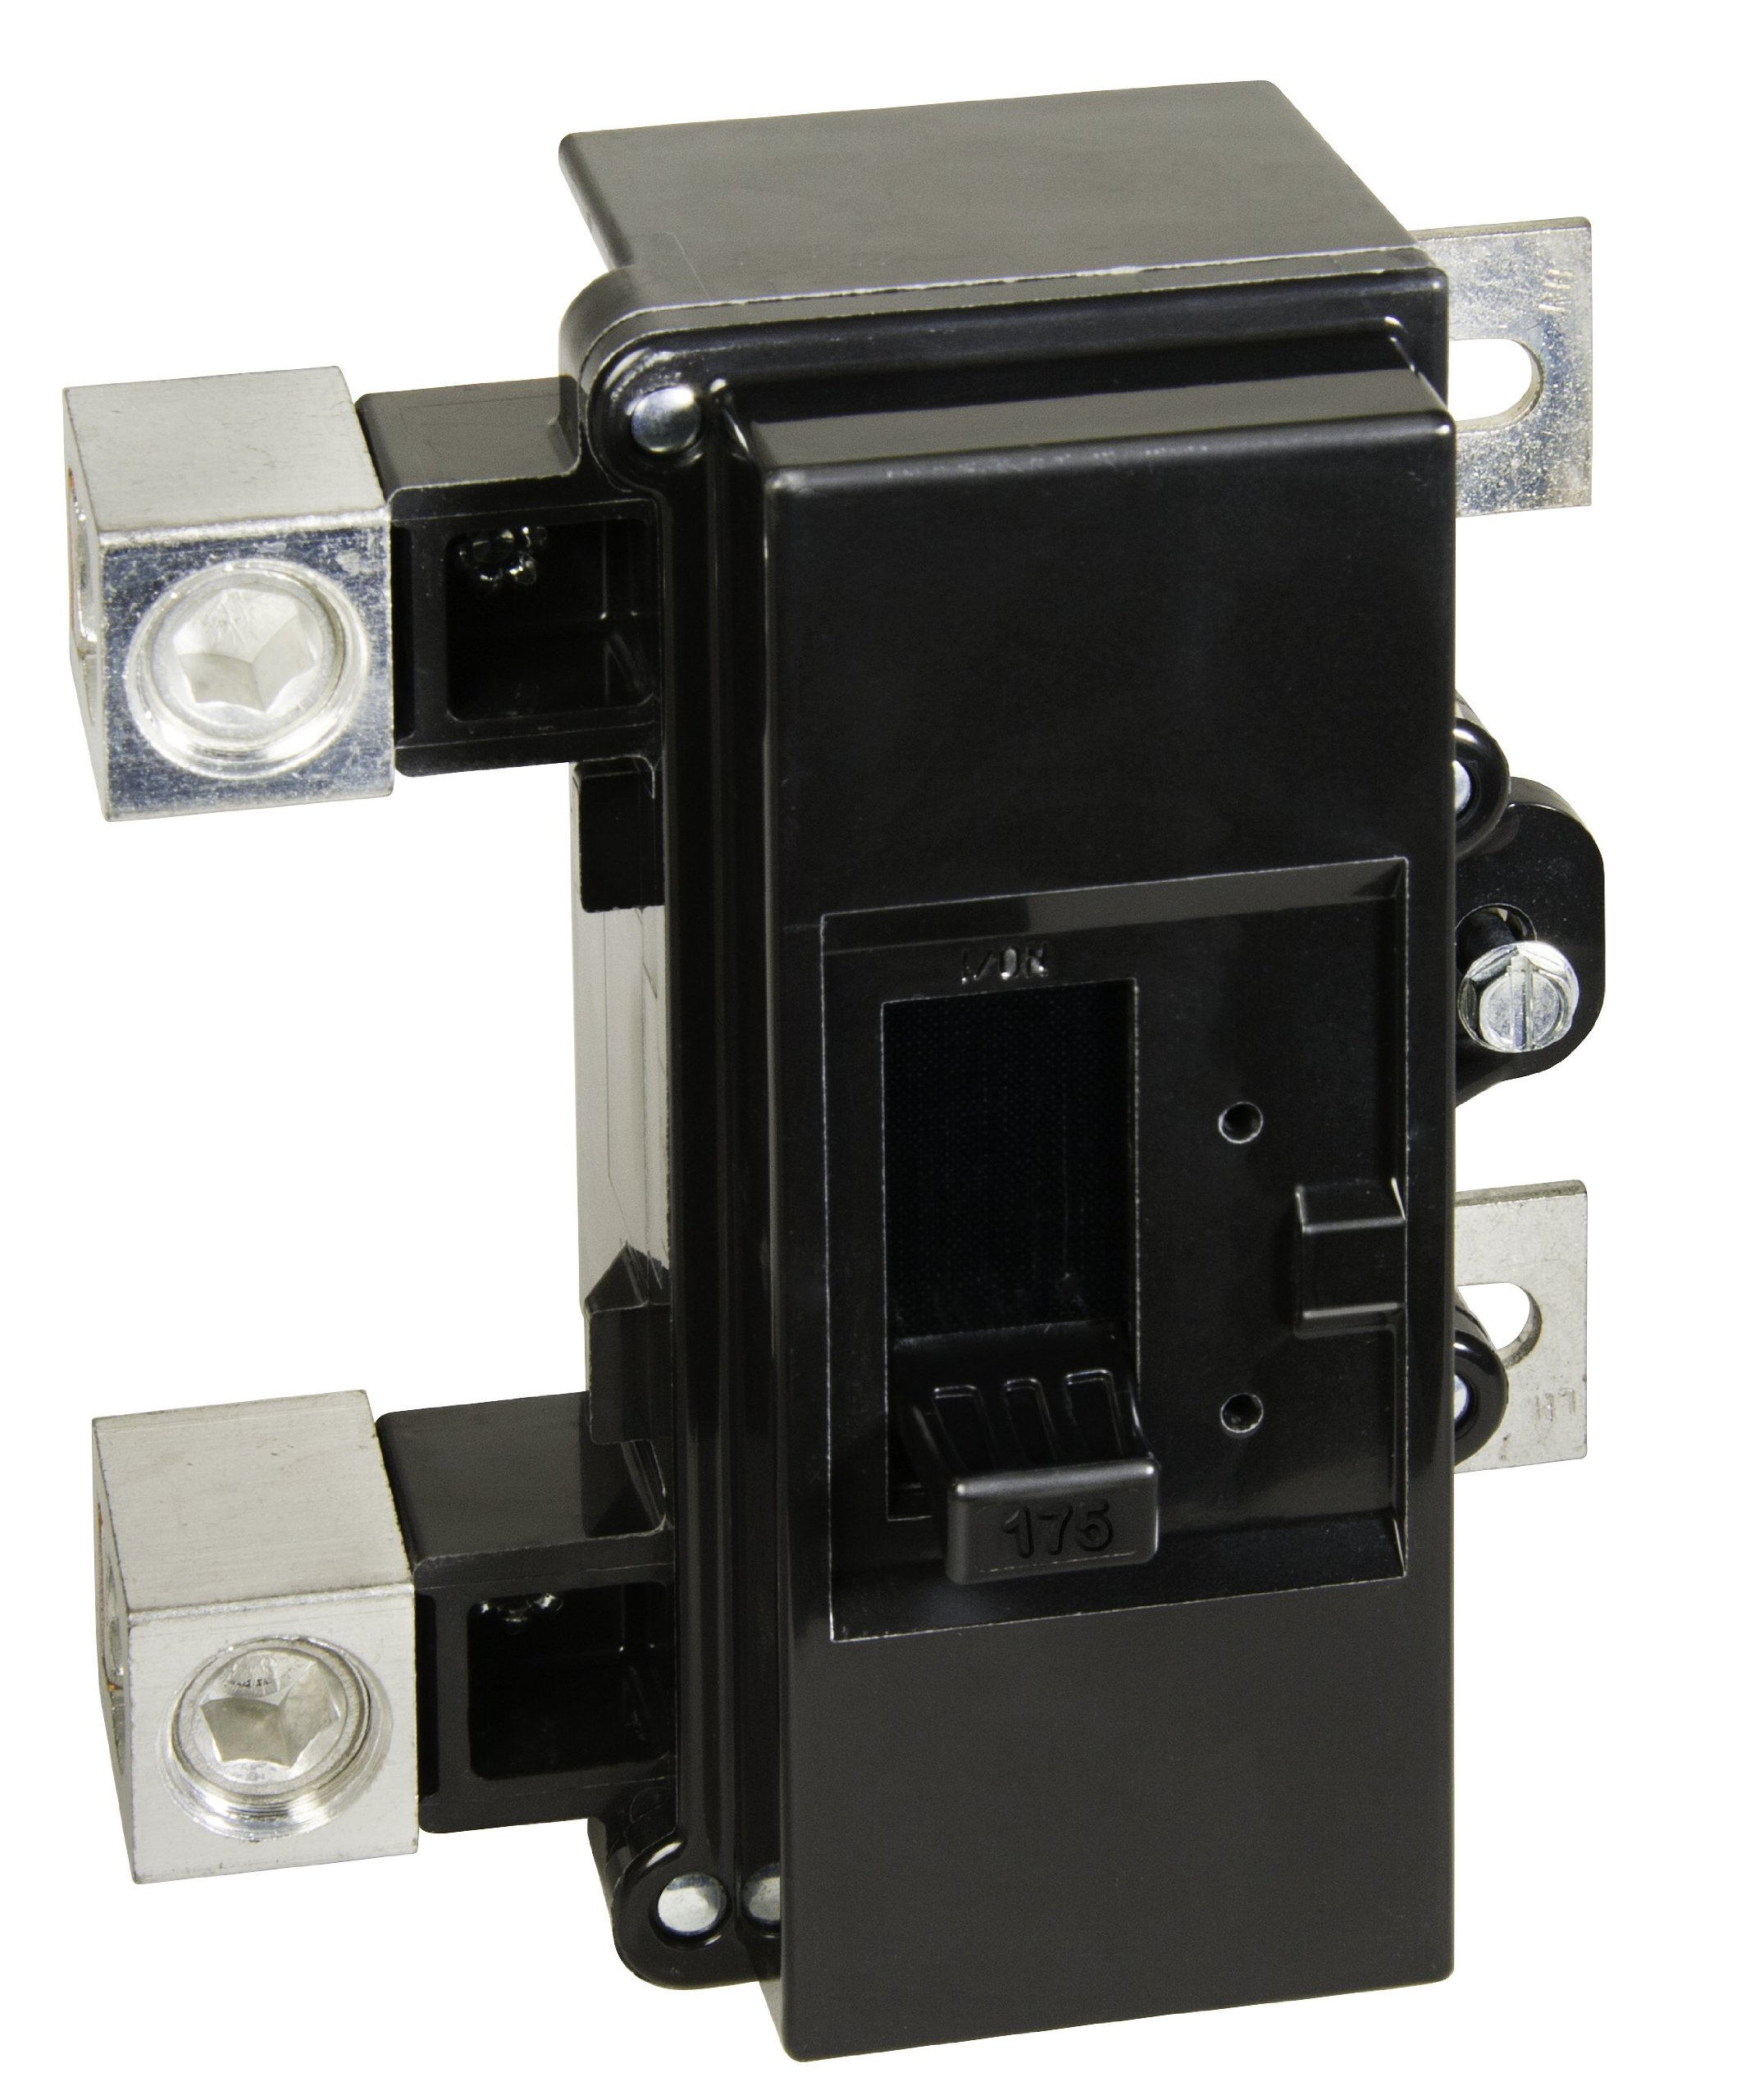 Square D by Schneider Electric QOM2175VH 175-Amp QOM2 Frame Size Main Circuit Breaker for QO and Homeline Load Centers